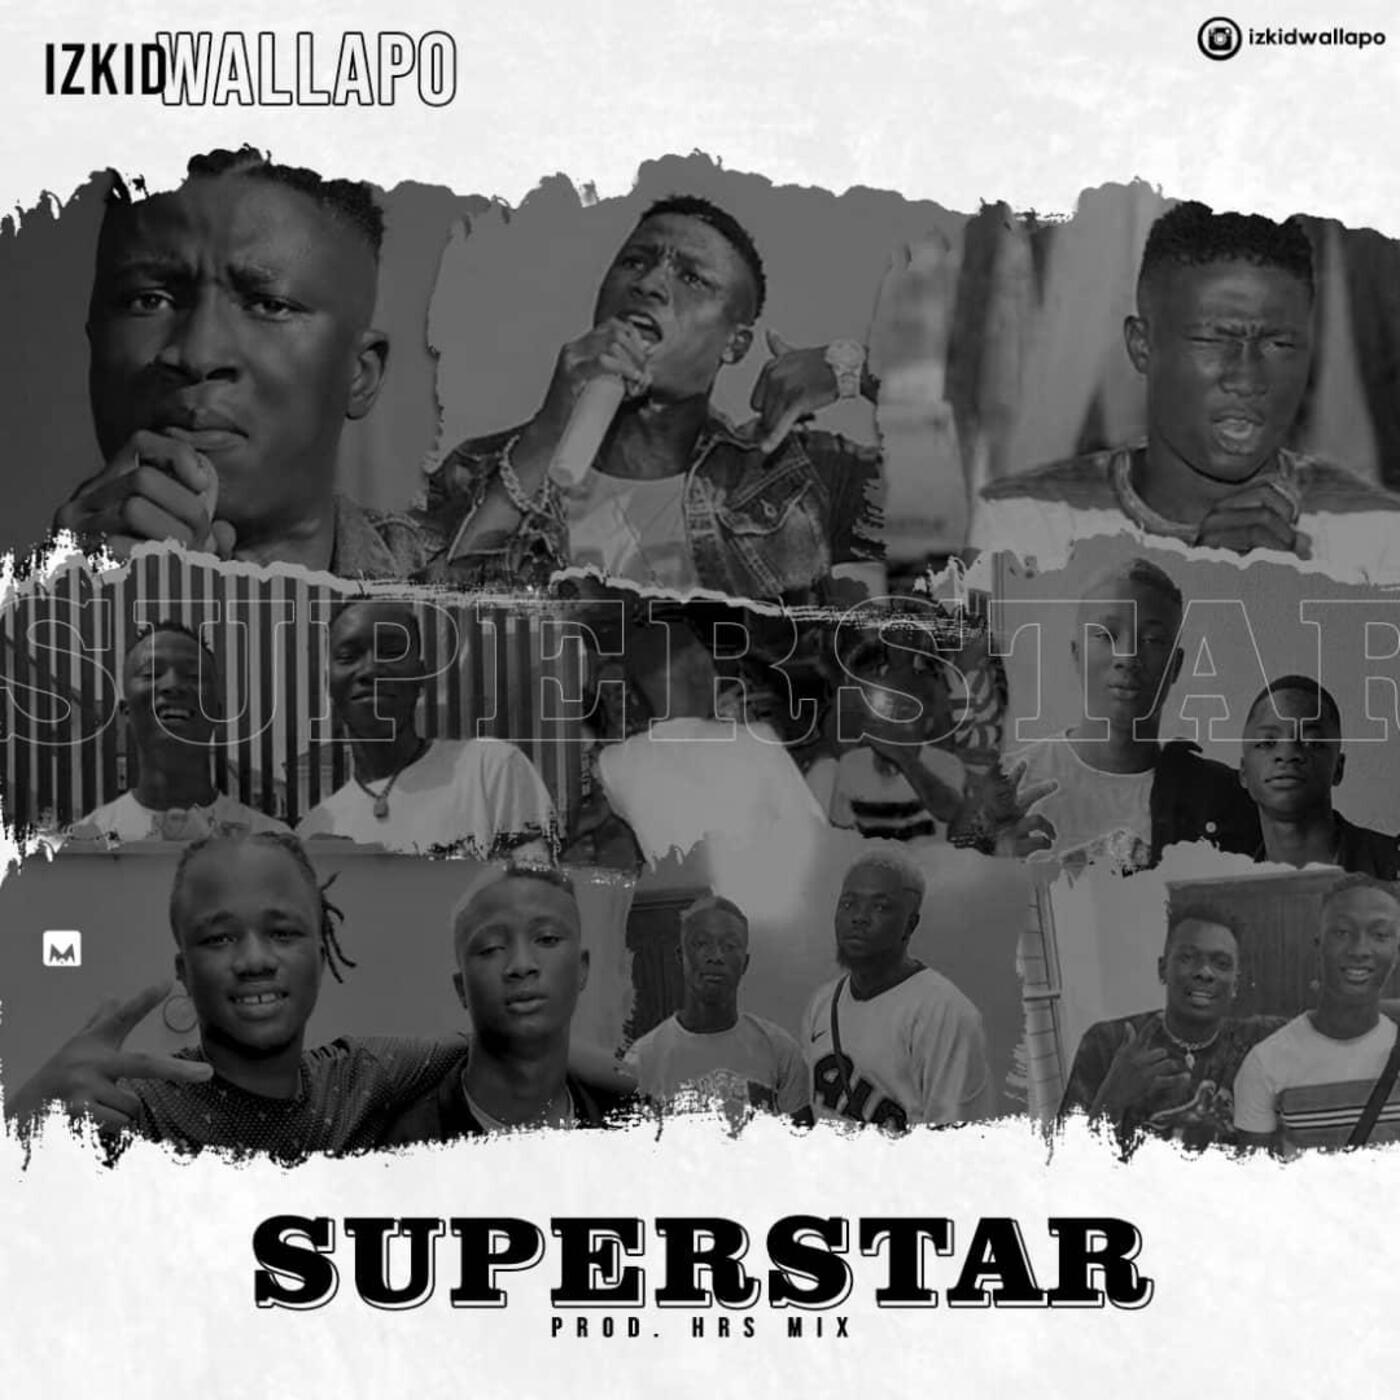 LYRICS : Izkid Wallapo – Superstar (Lyrics) min